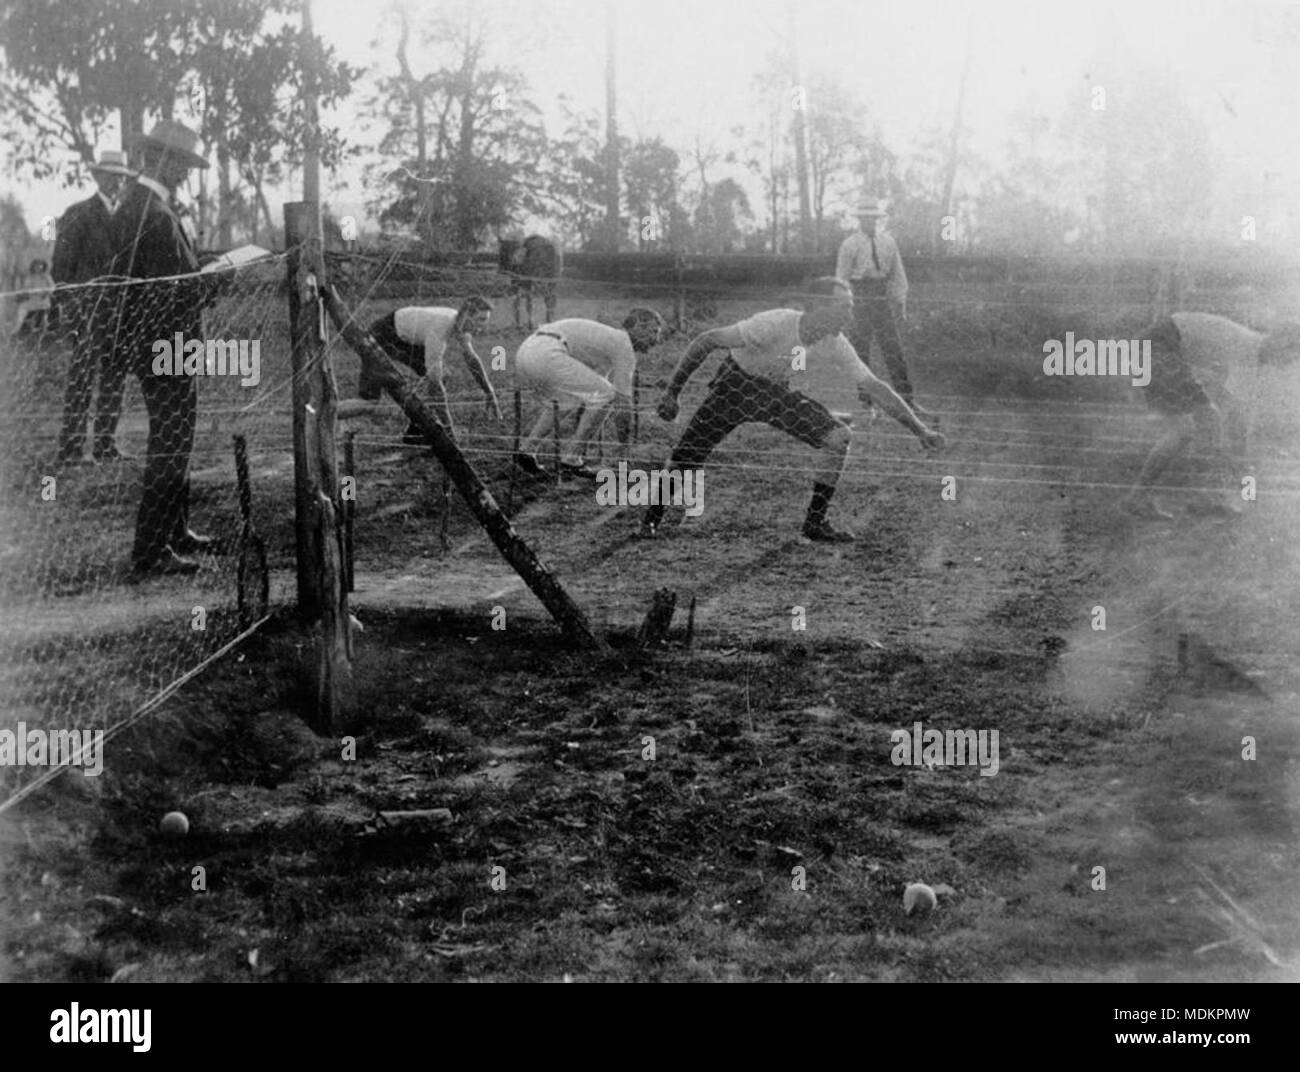 Woodford Black and White Stock Photos & Images - Alamy